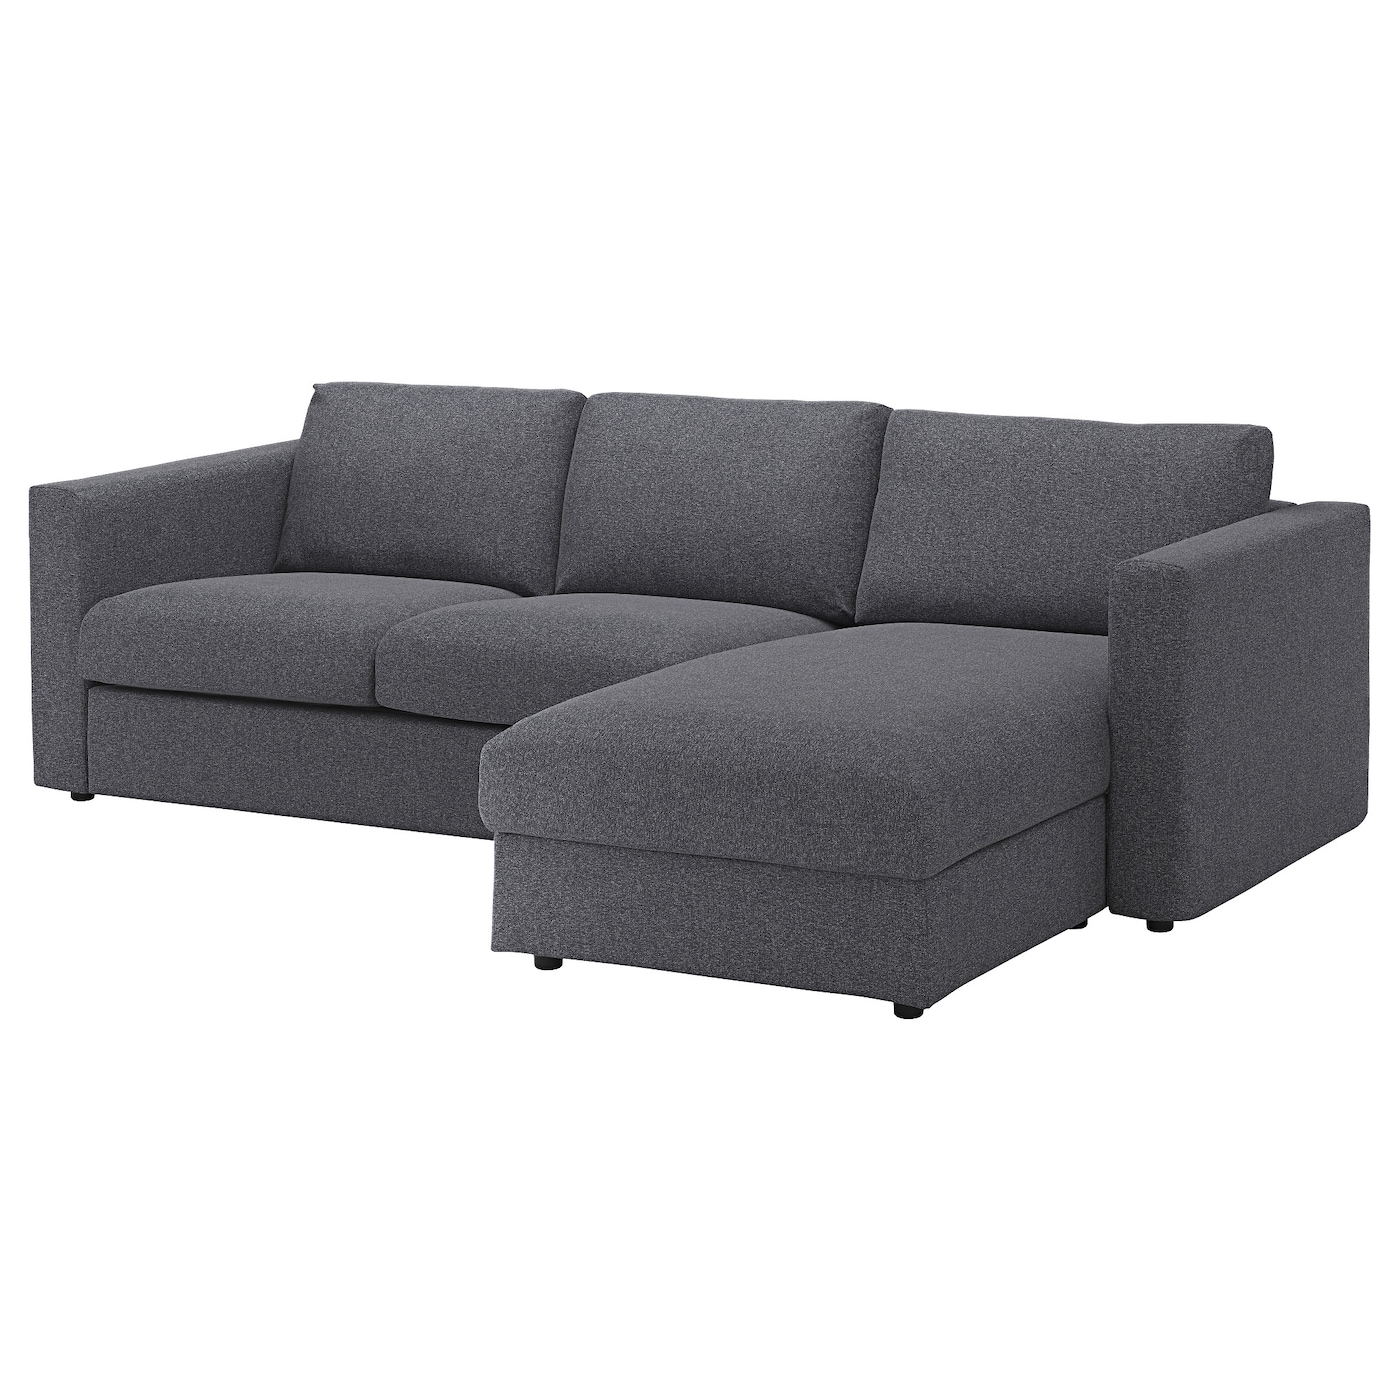 vimle 3 seat sofa with chaise longue gunnared medium grey